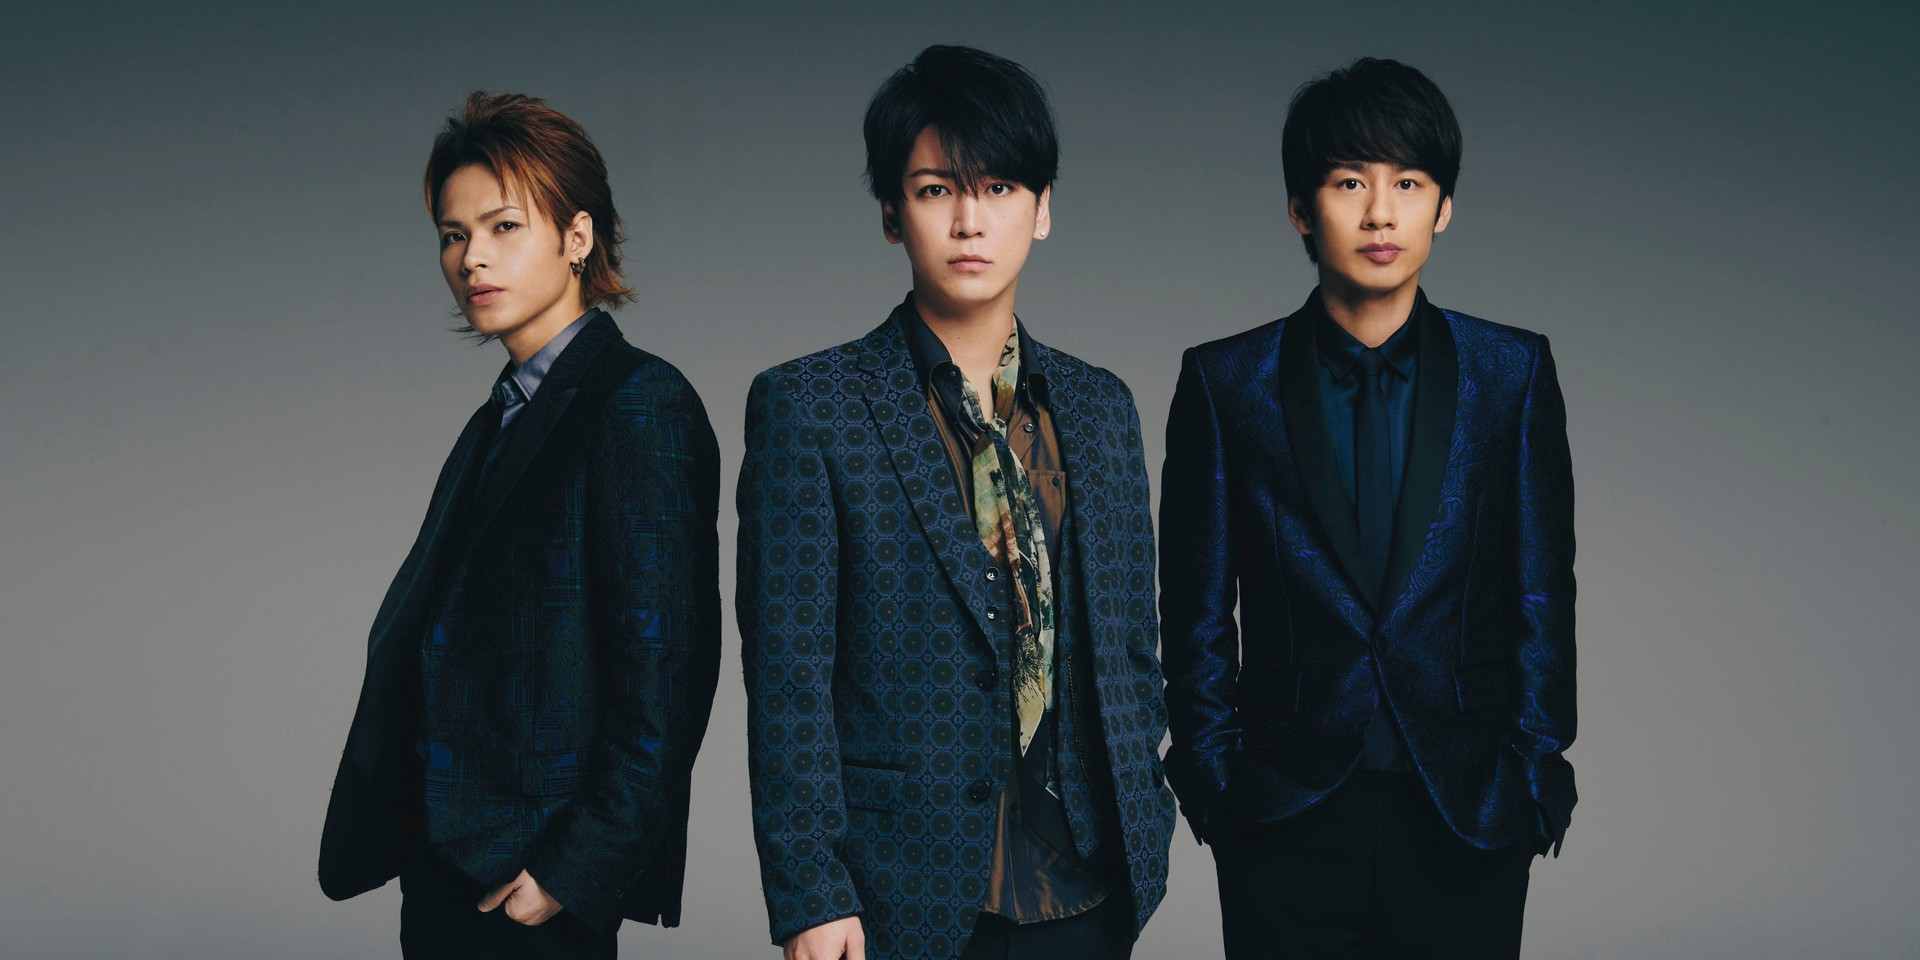 KAT-TUN's latest single 'Roar' is now available for global streaming on Spotify